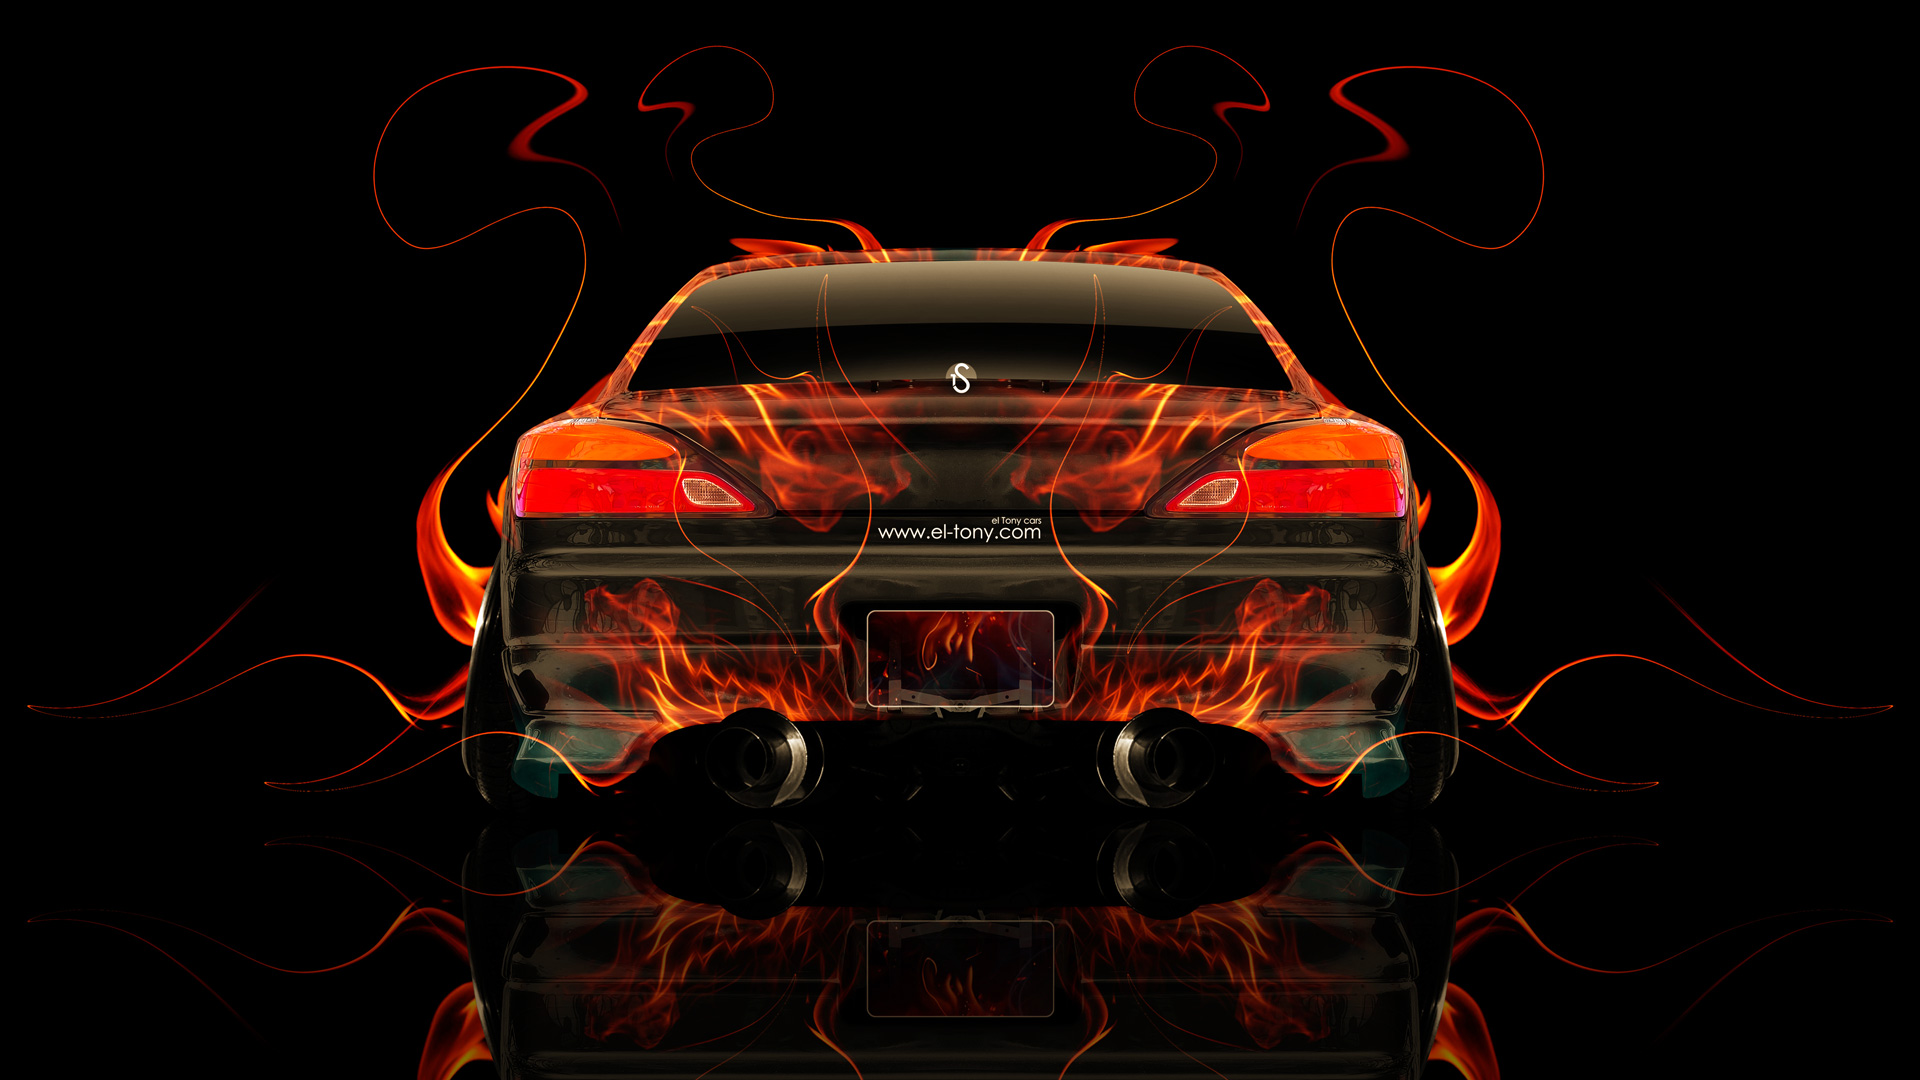 Superior Nissan Silvia S15 JDM Back Fire Abstract Car